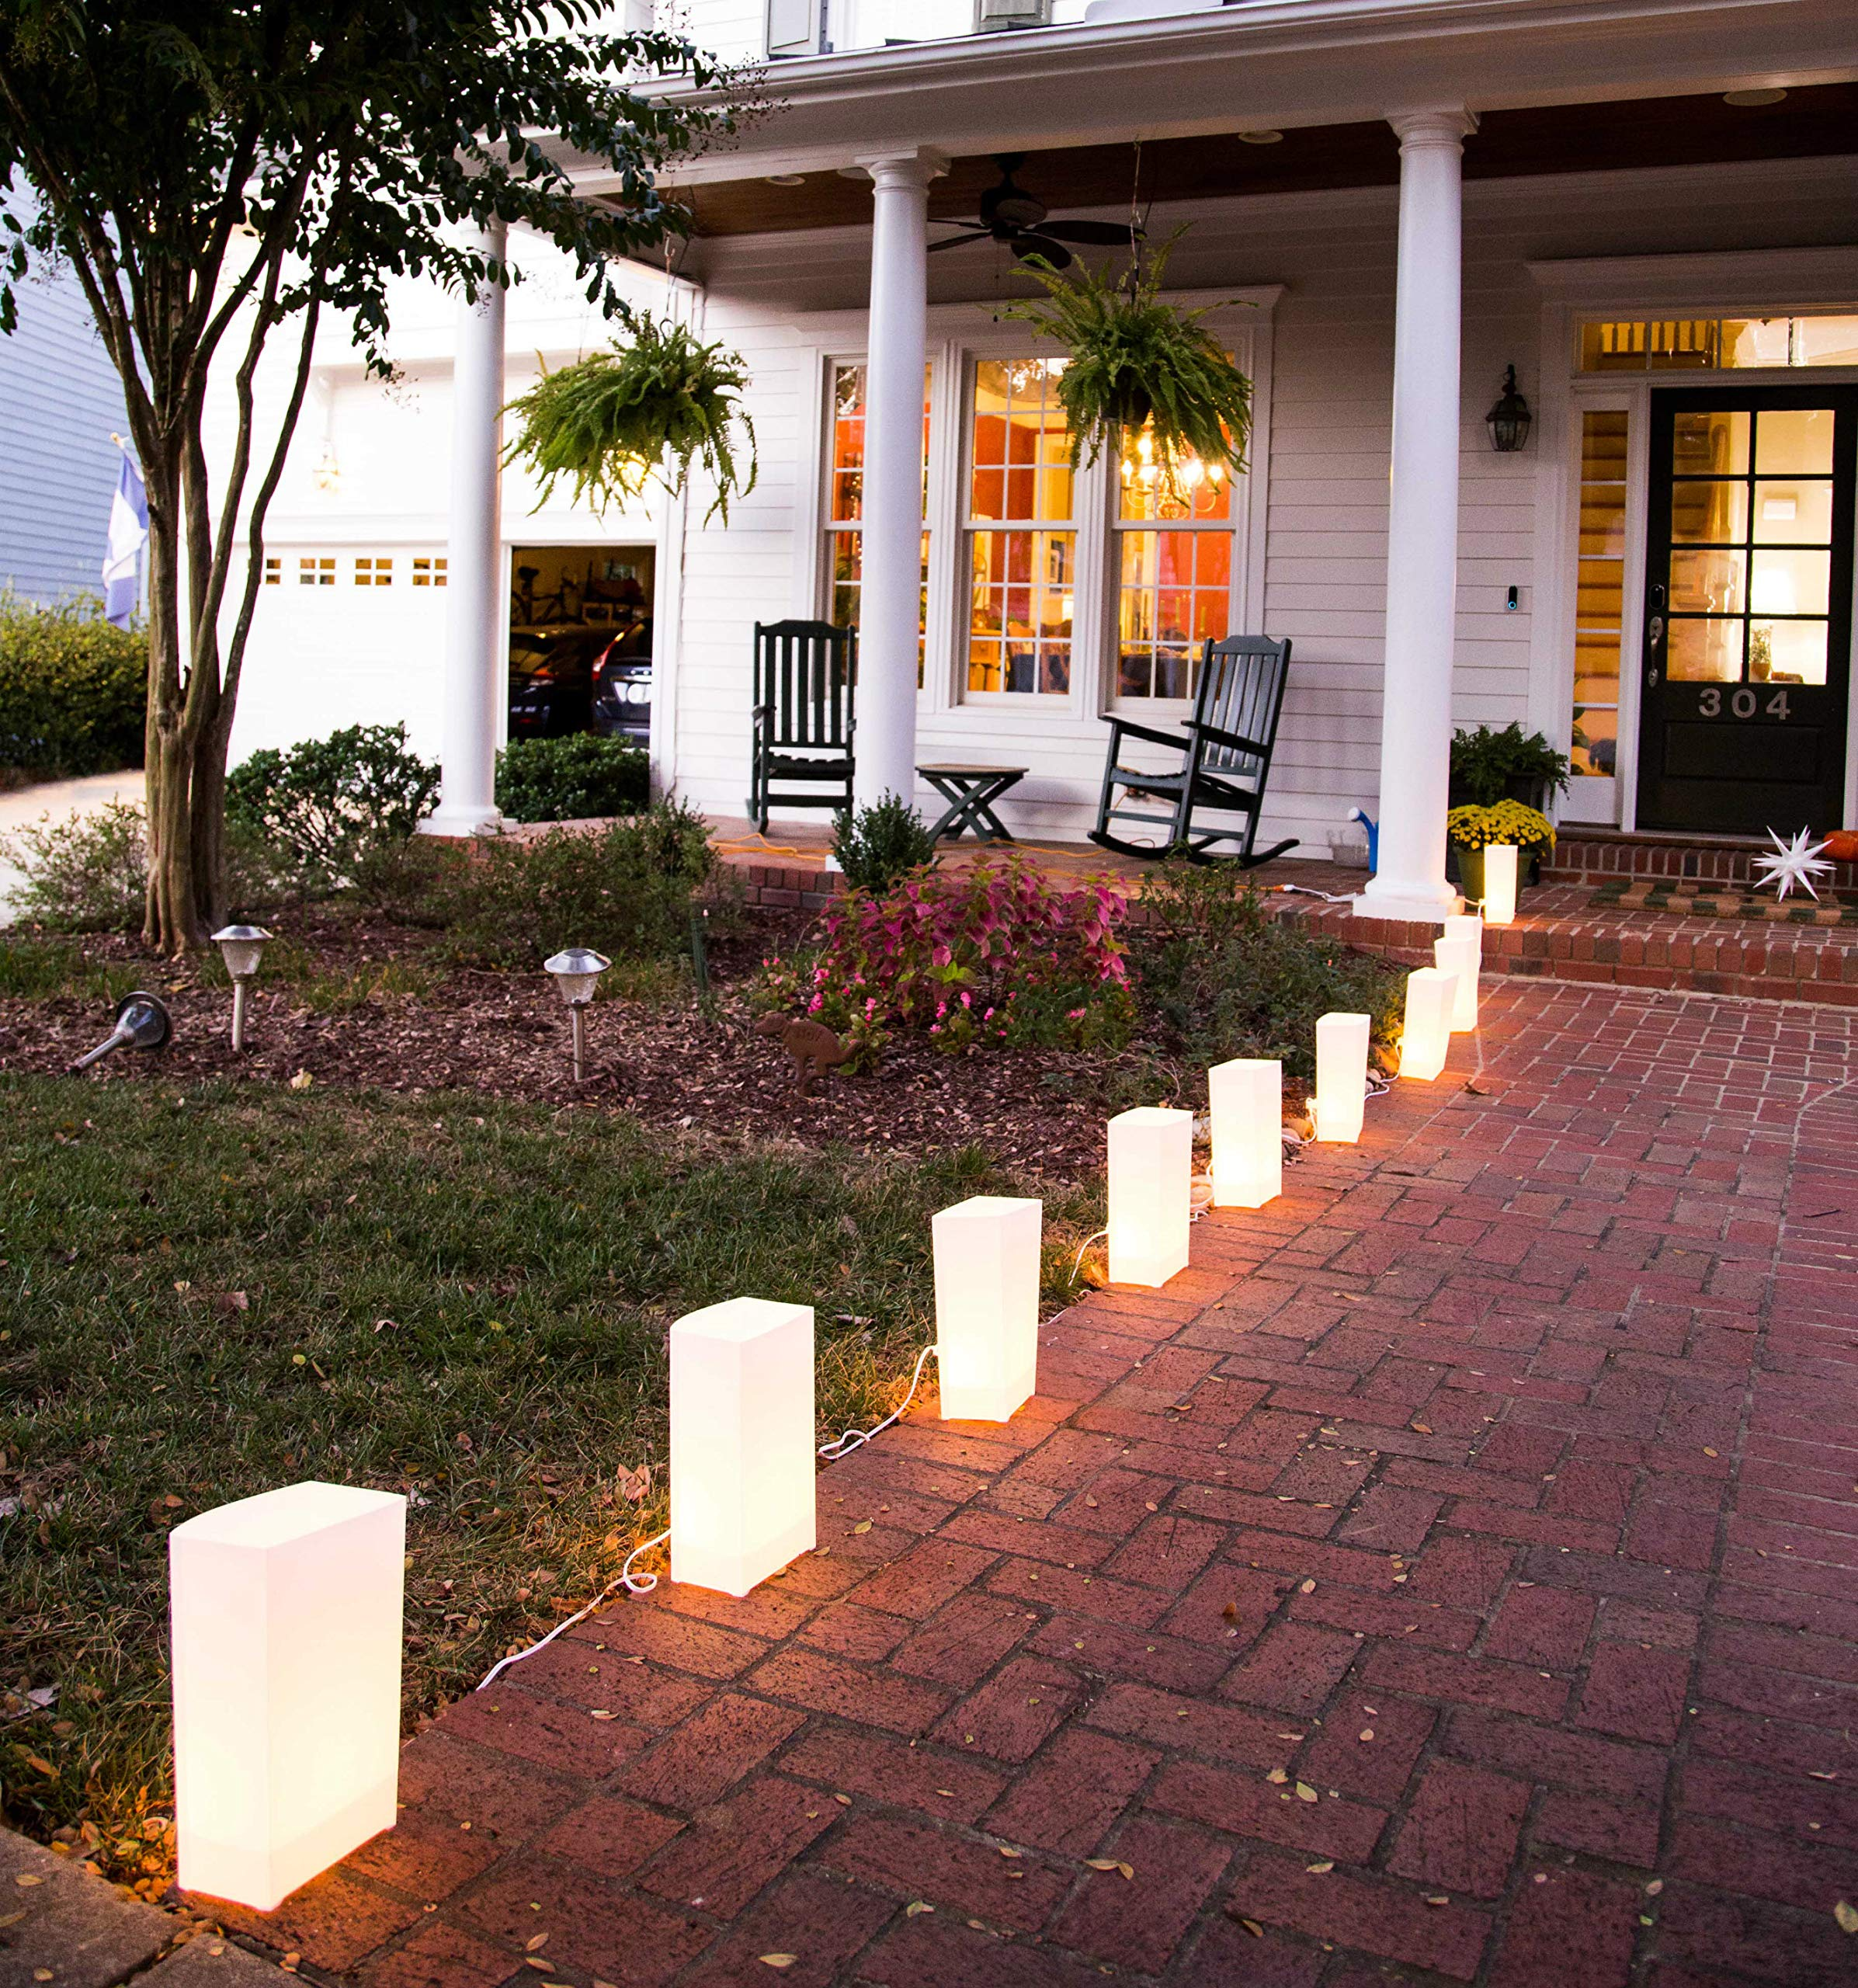 Elf Logic - Set of 10 Electric Luminary Bags (LED Lights) - Plug in and Weatherproof Vellum Christmas Pathway Lighting - Reusable Luminary Bags - Perfect Outdoor Holiday Lights by Elf Logic